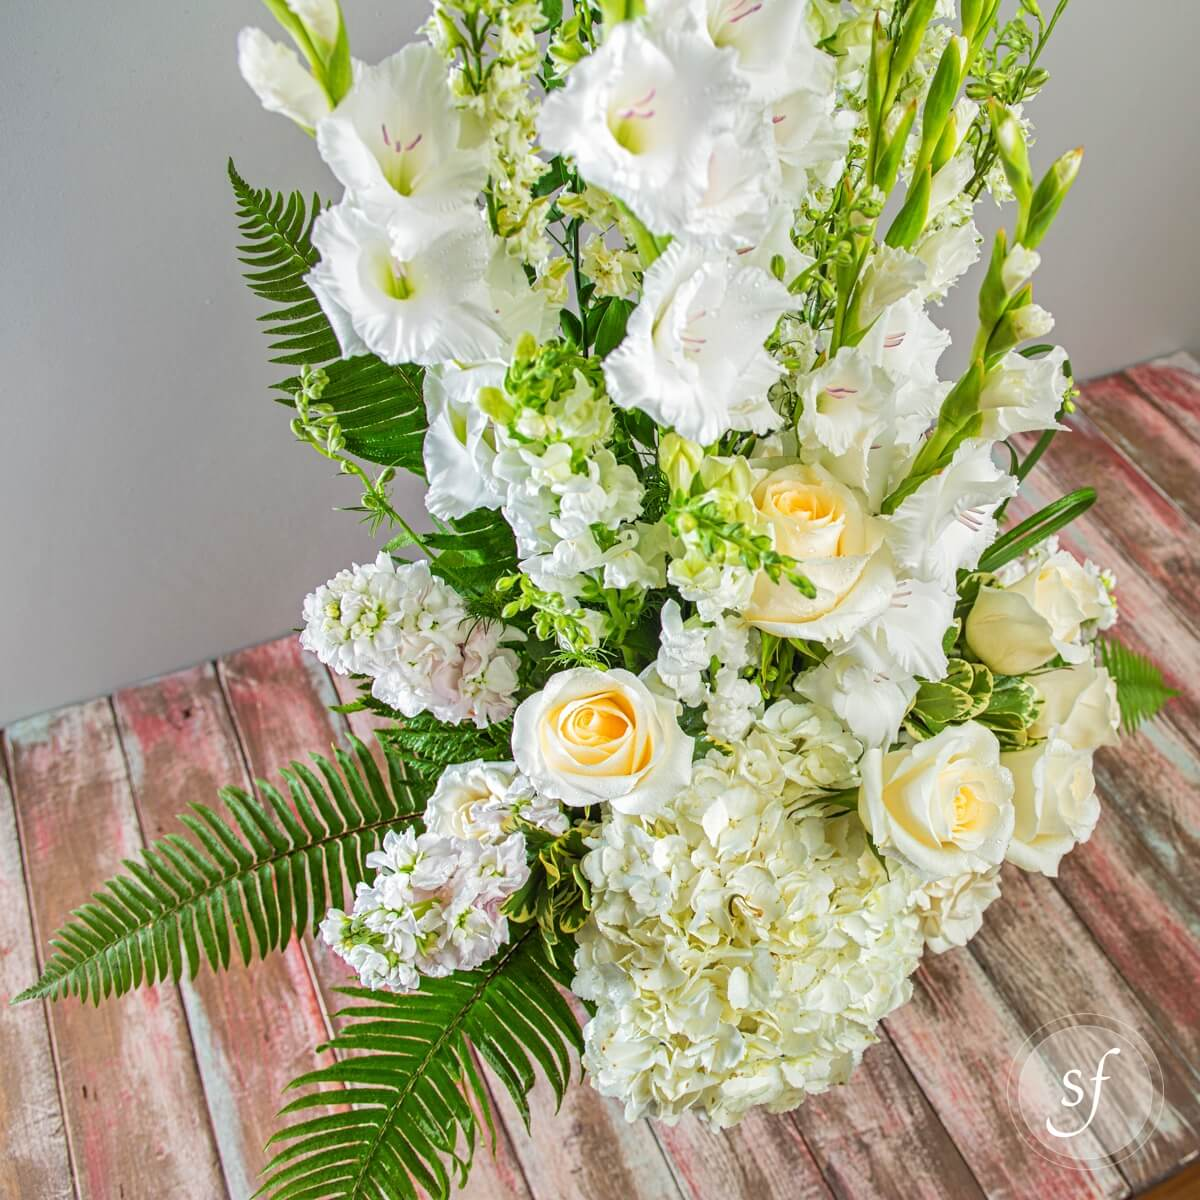 Peaceful urn in white sympathy steves floral express sympathy with this large and elegant funeral arrangement featuring white gladioli roses hydrangea izmirmasajfo